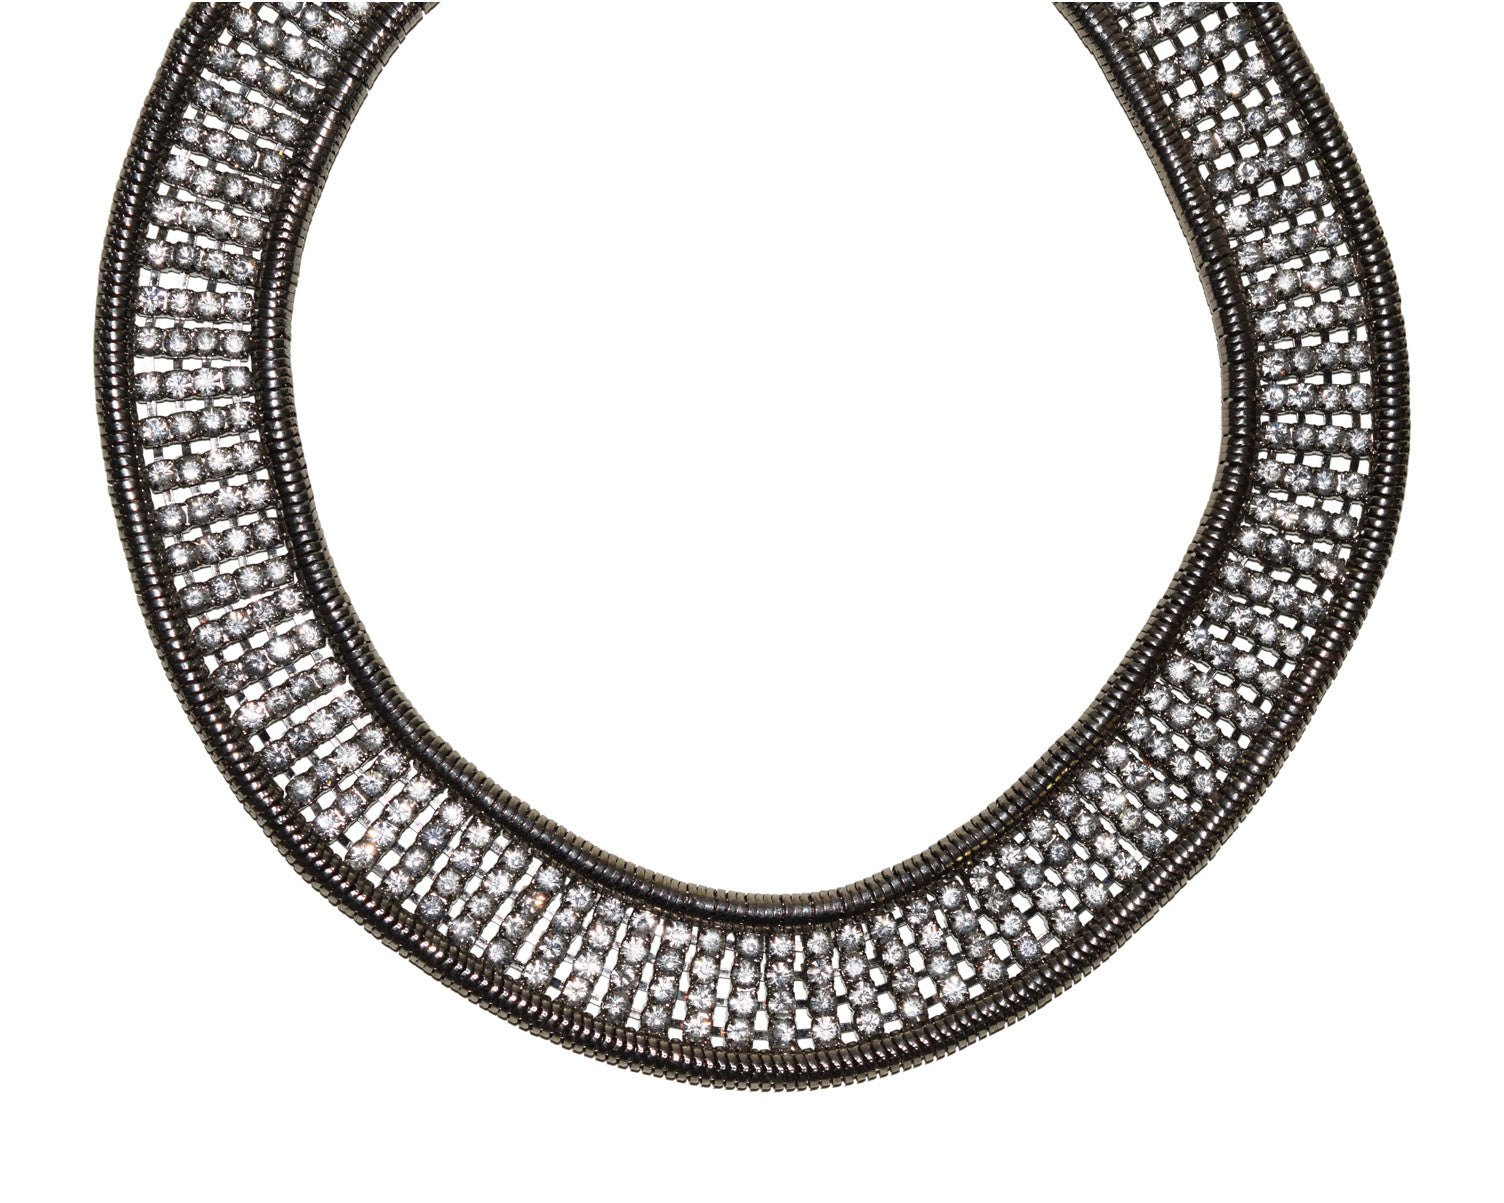 Vintage Rhinestone Snake Chain Collar Necklace